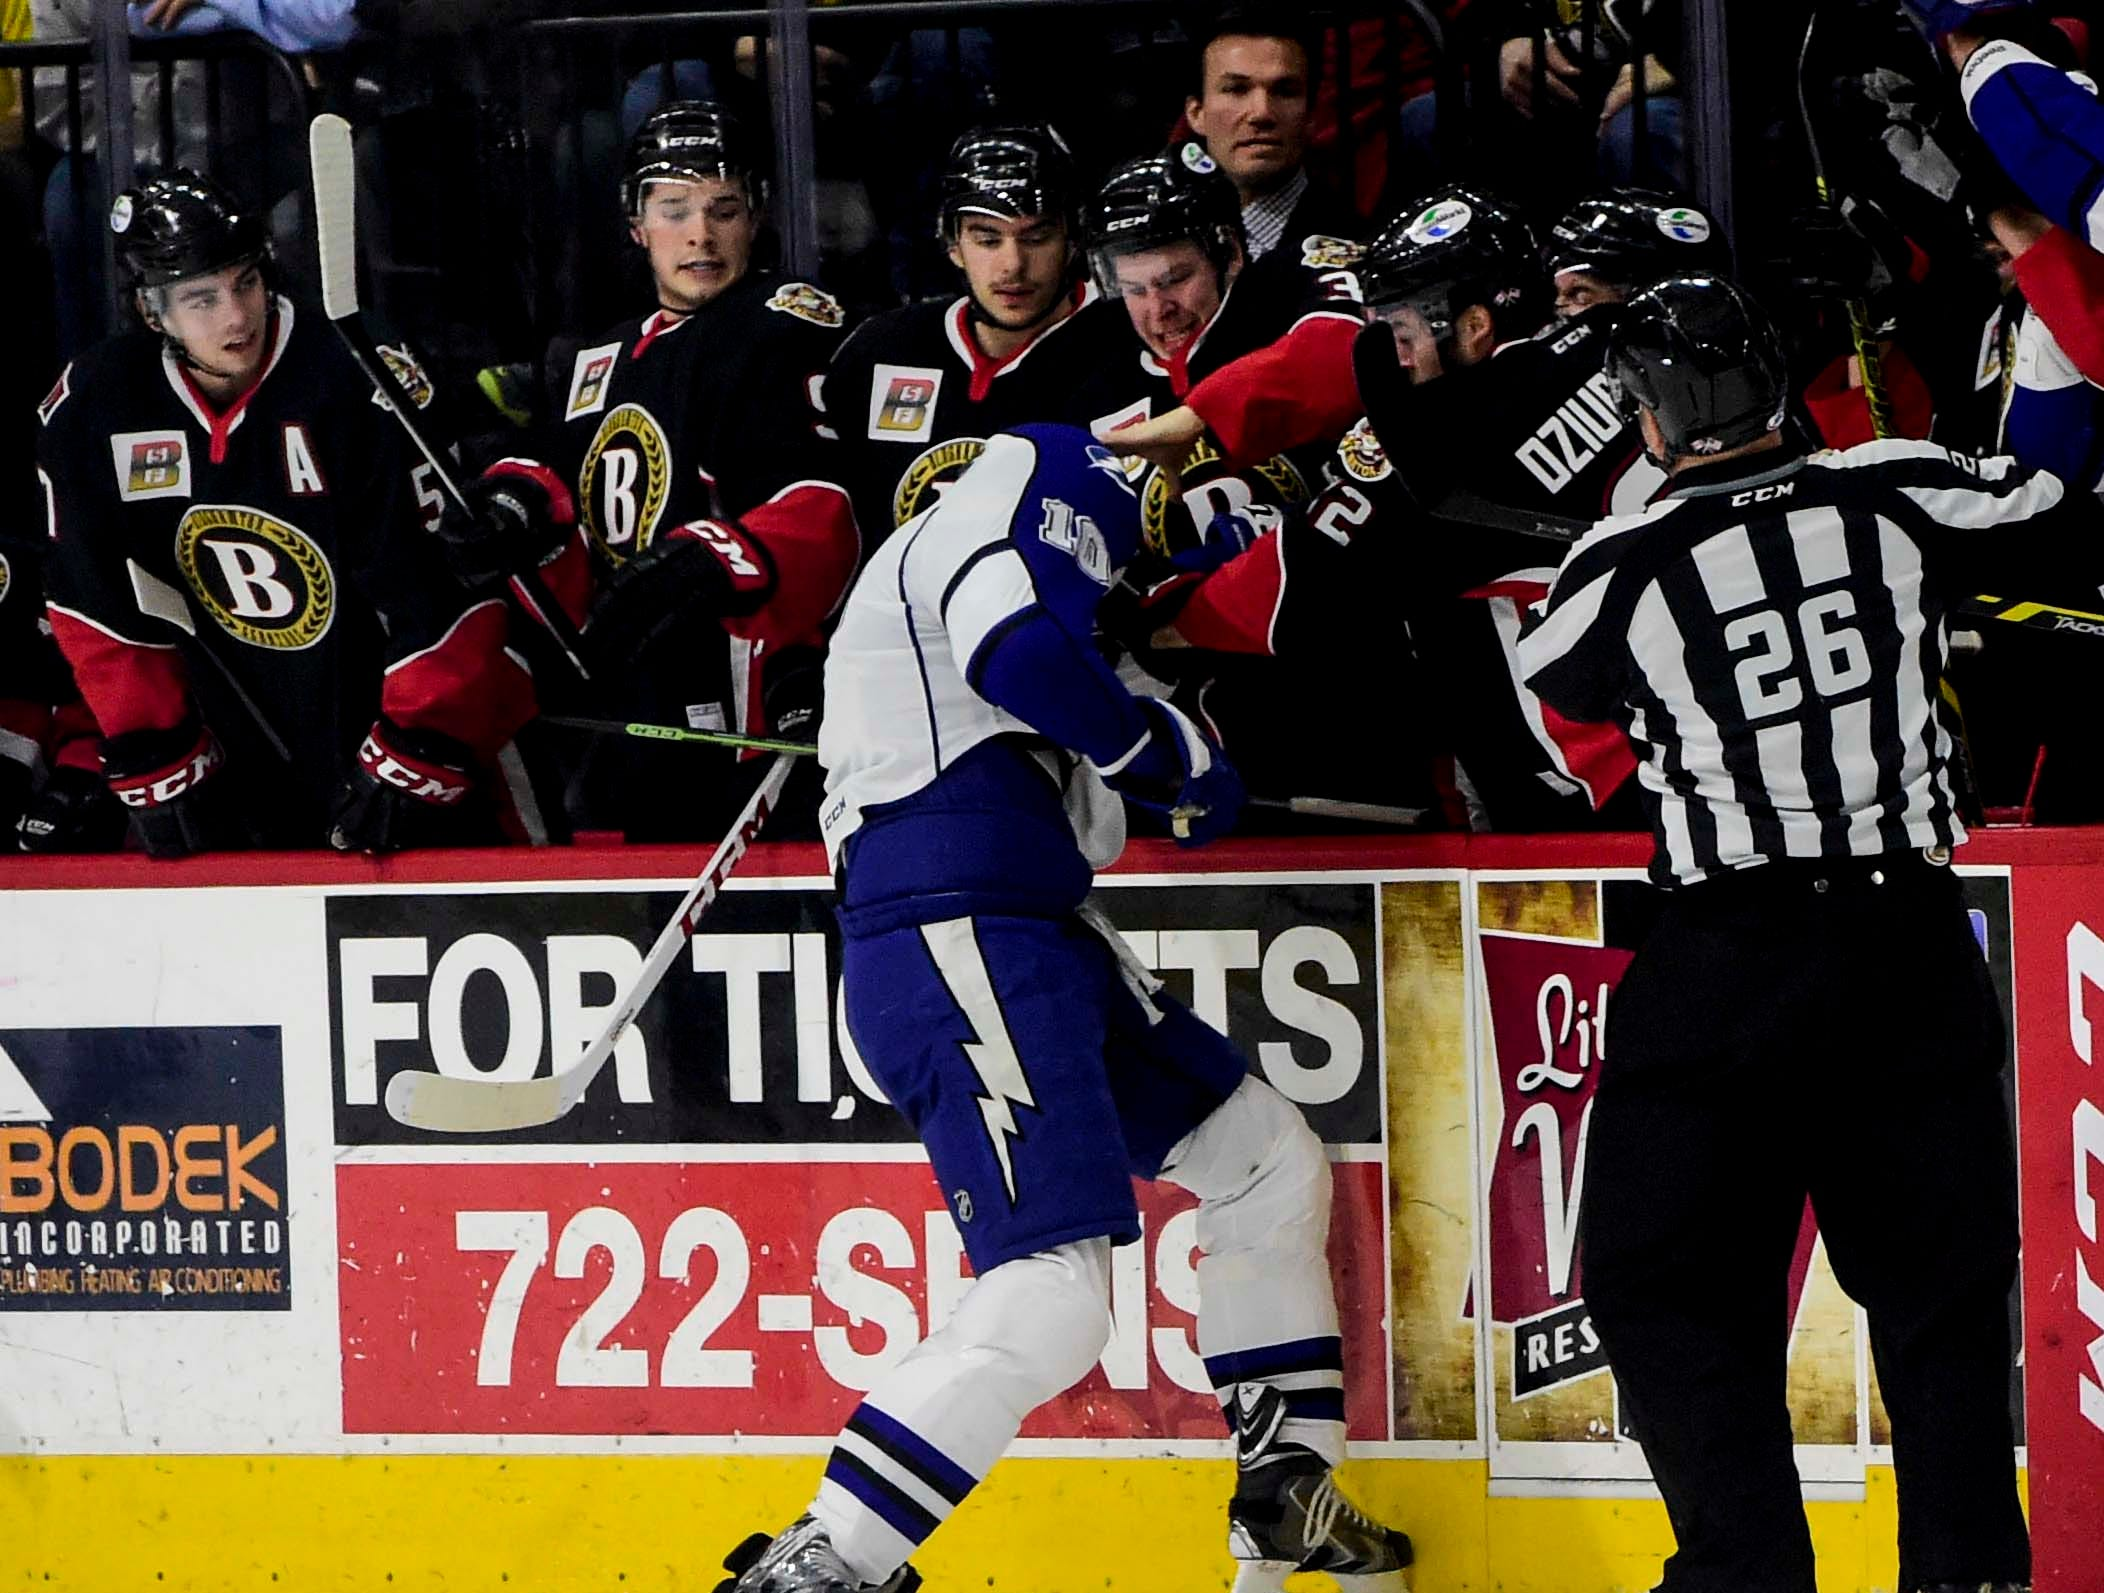 2015: BinghamtonÕs bench gets into a fight with SyracuseÕs Mike Angelidis during a hockey game at the Floyd L. Maines Veterans Memorial Arena on Friday.